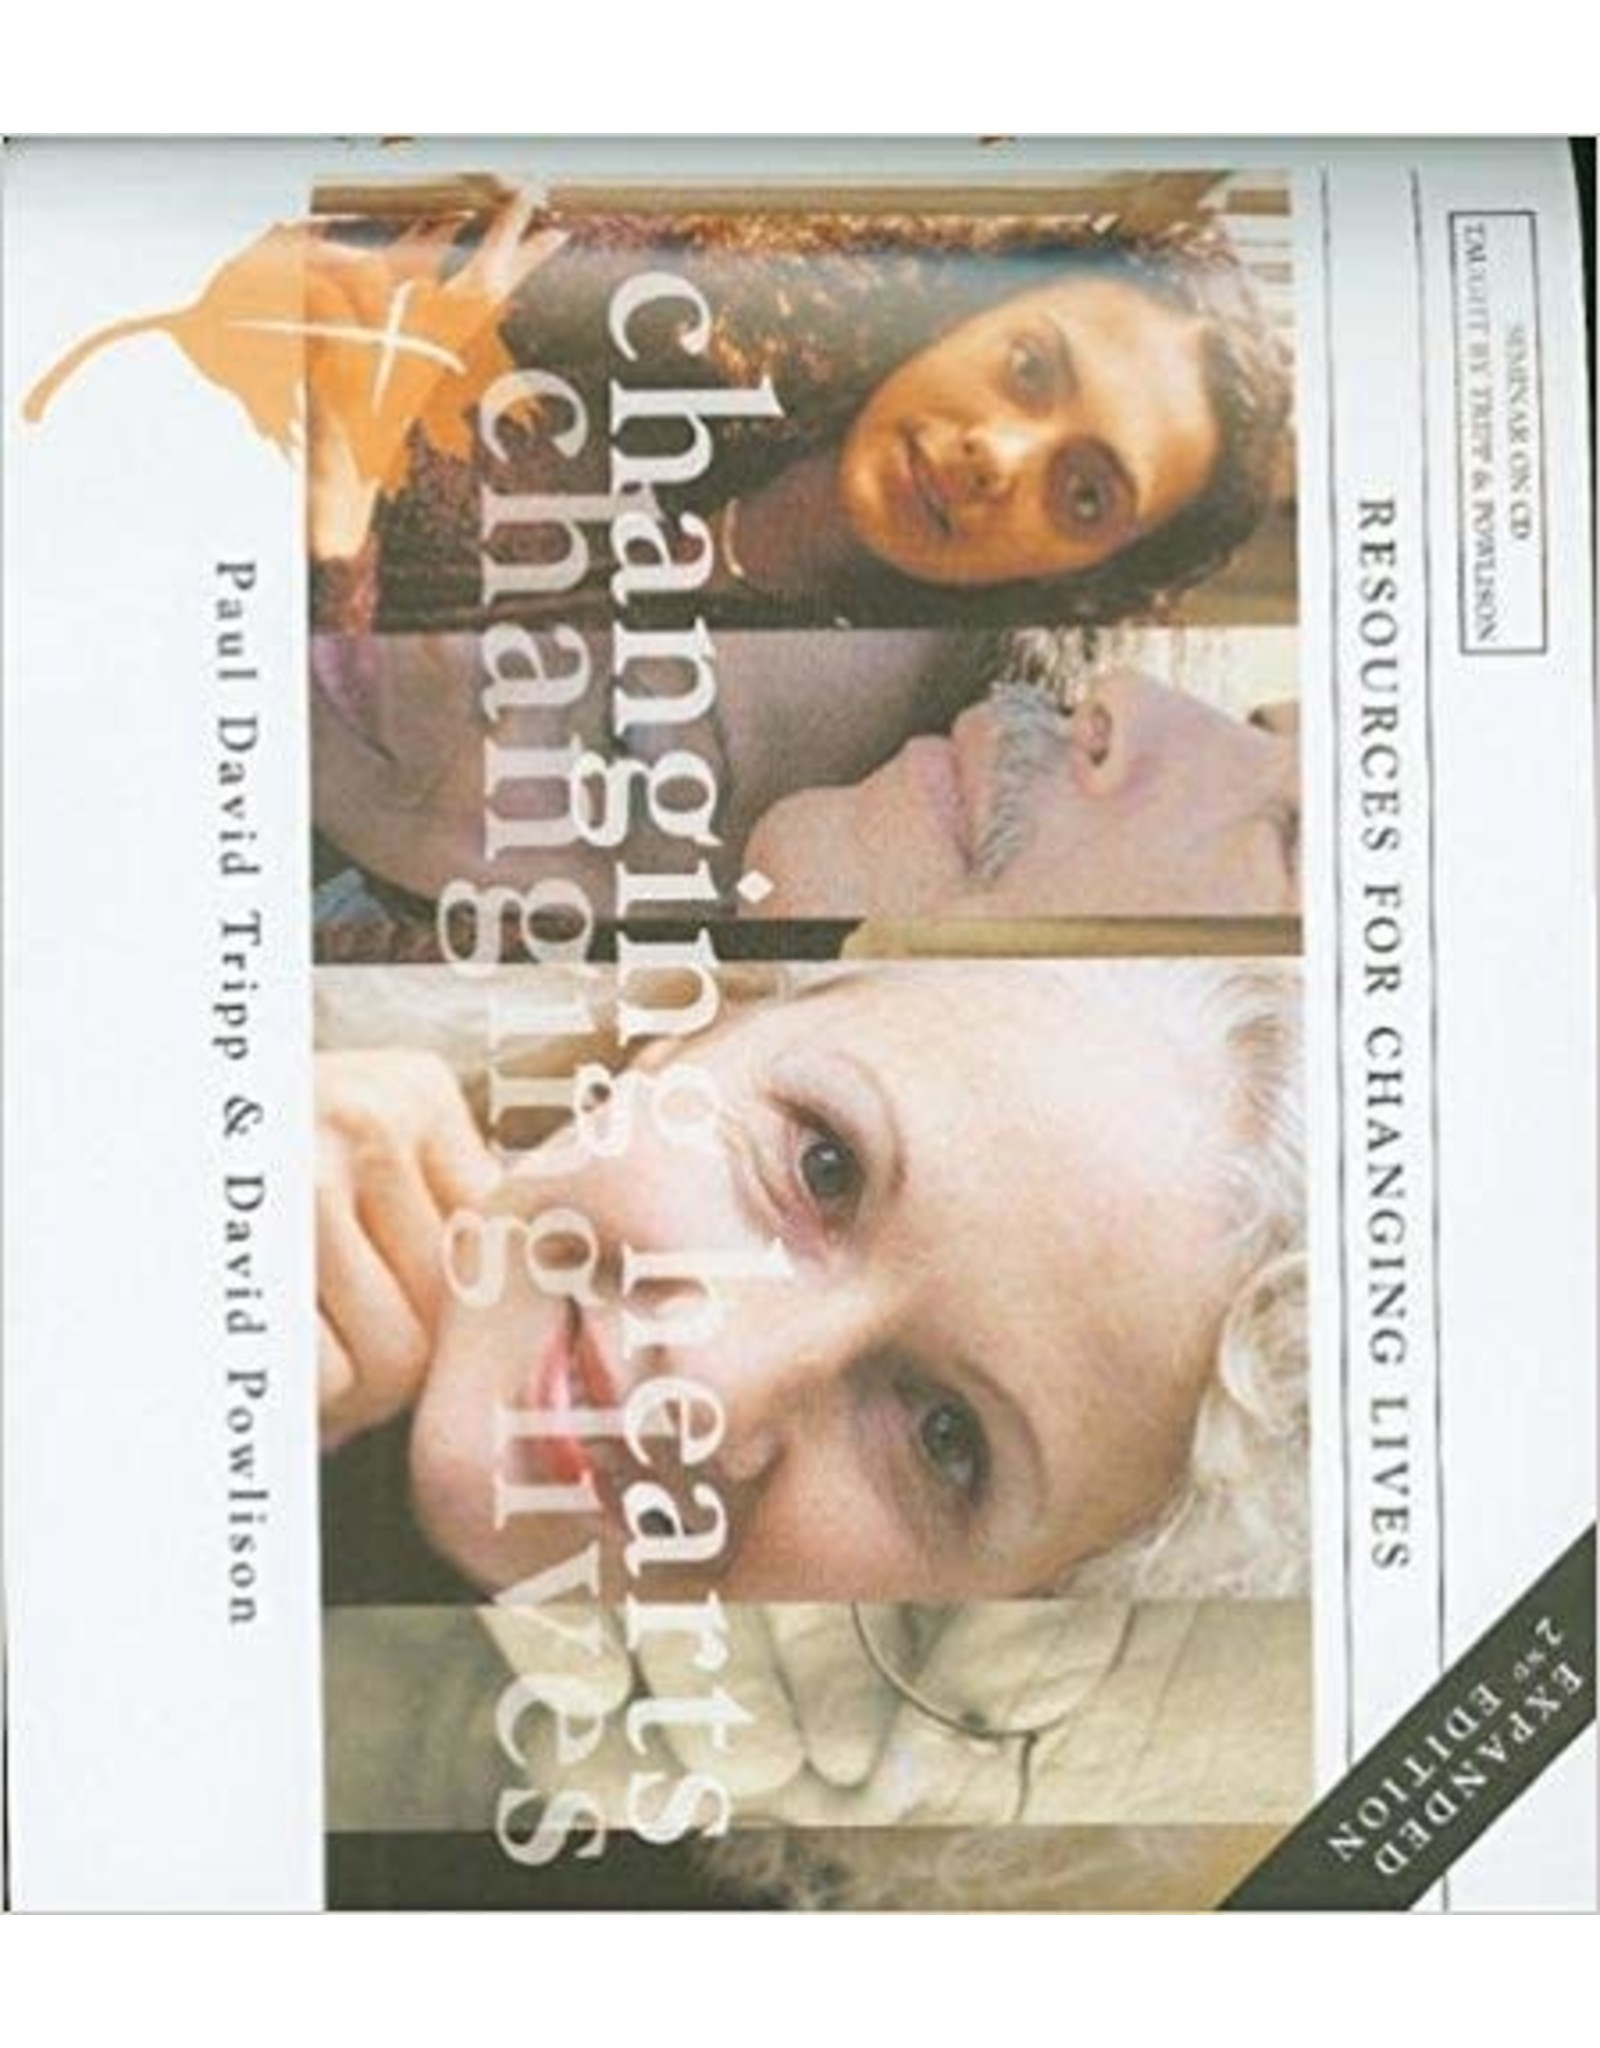 Tripp Changing Hearts, Changing Lives DVD Set